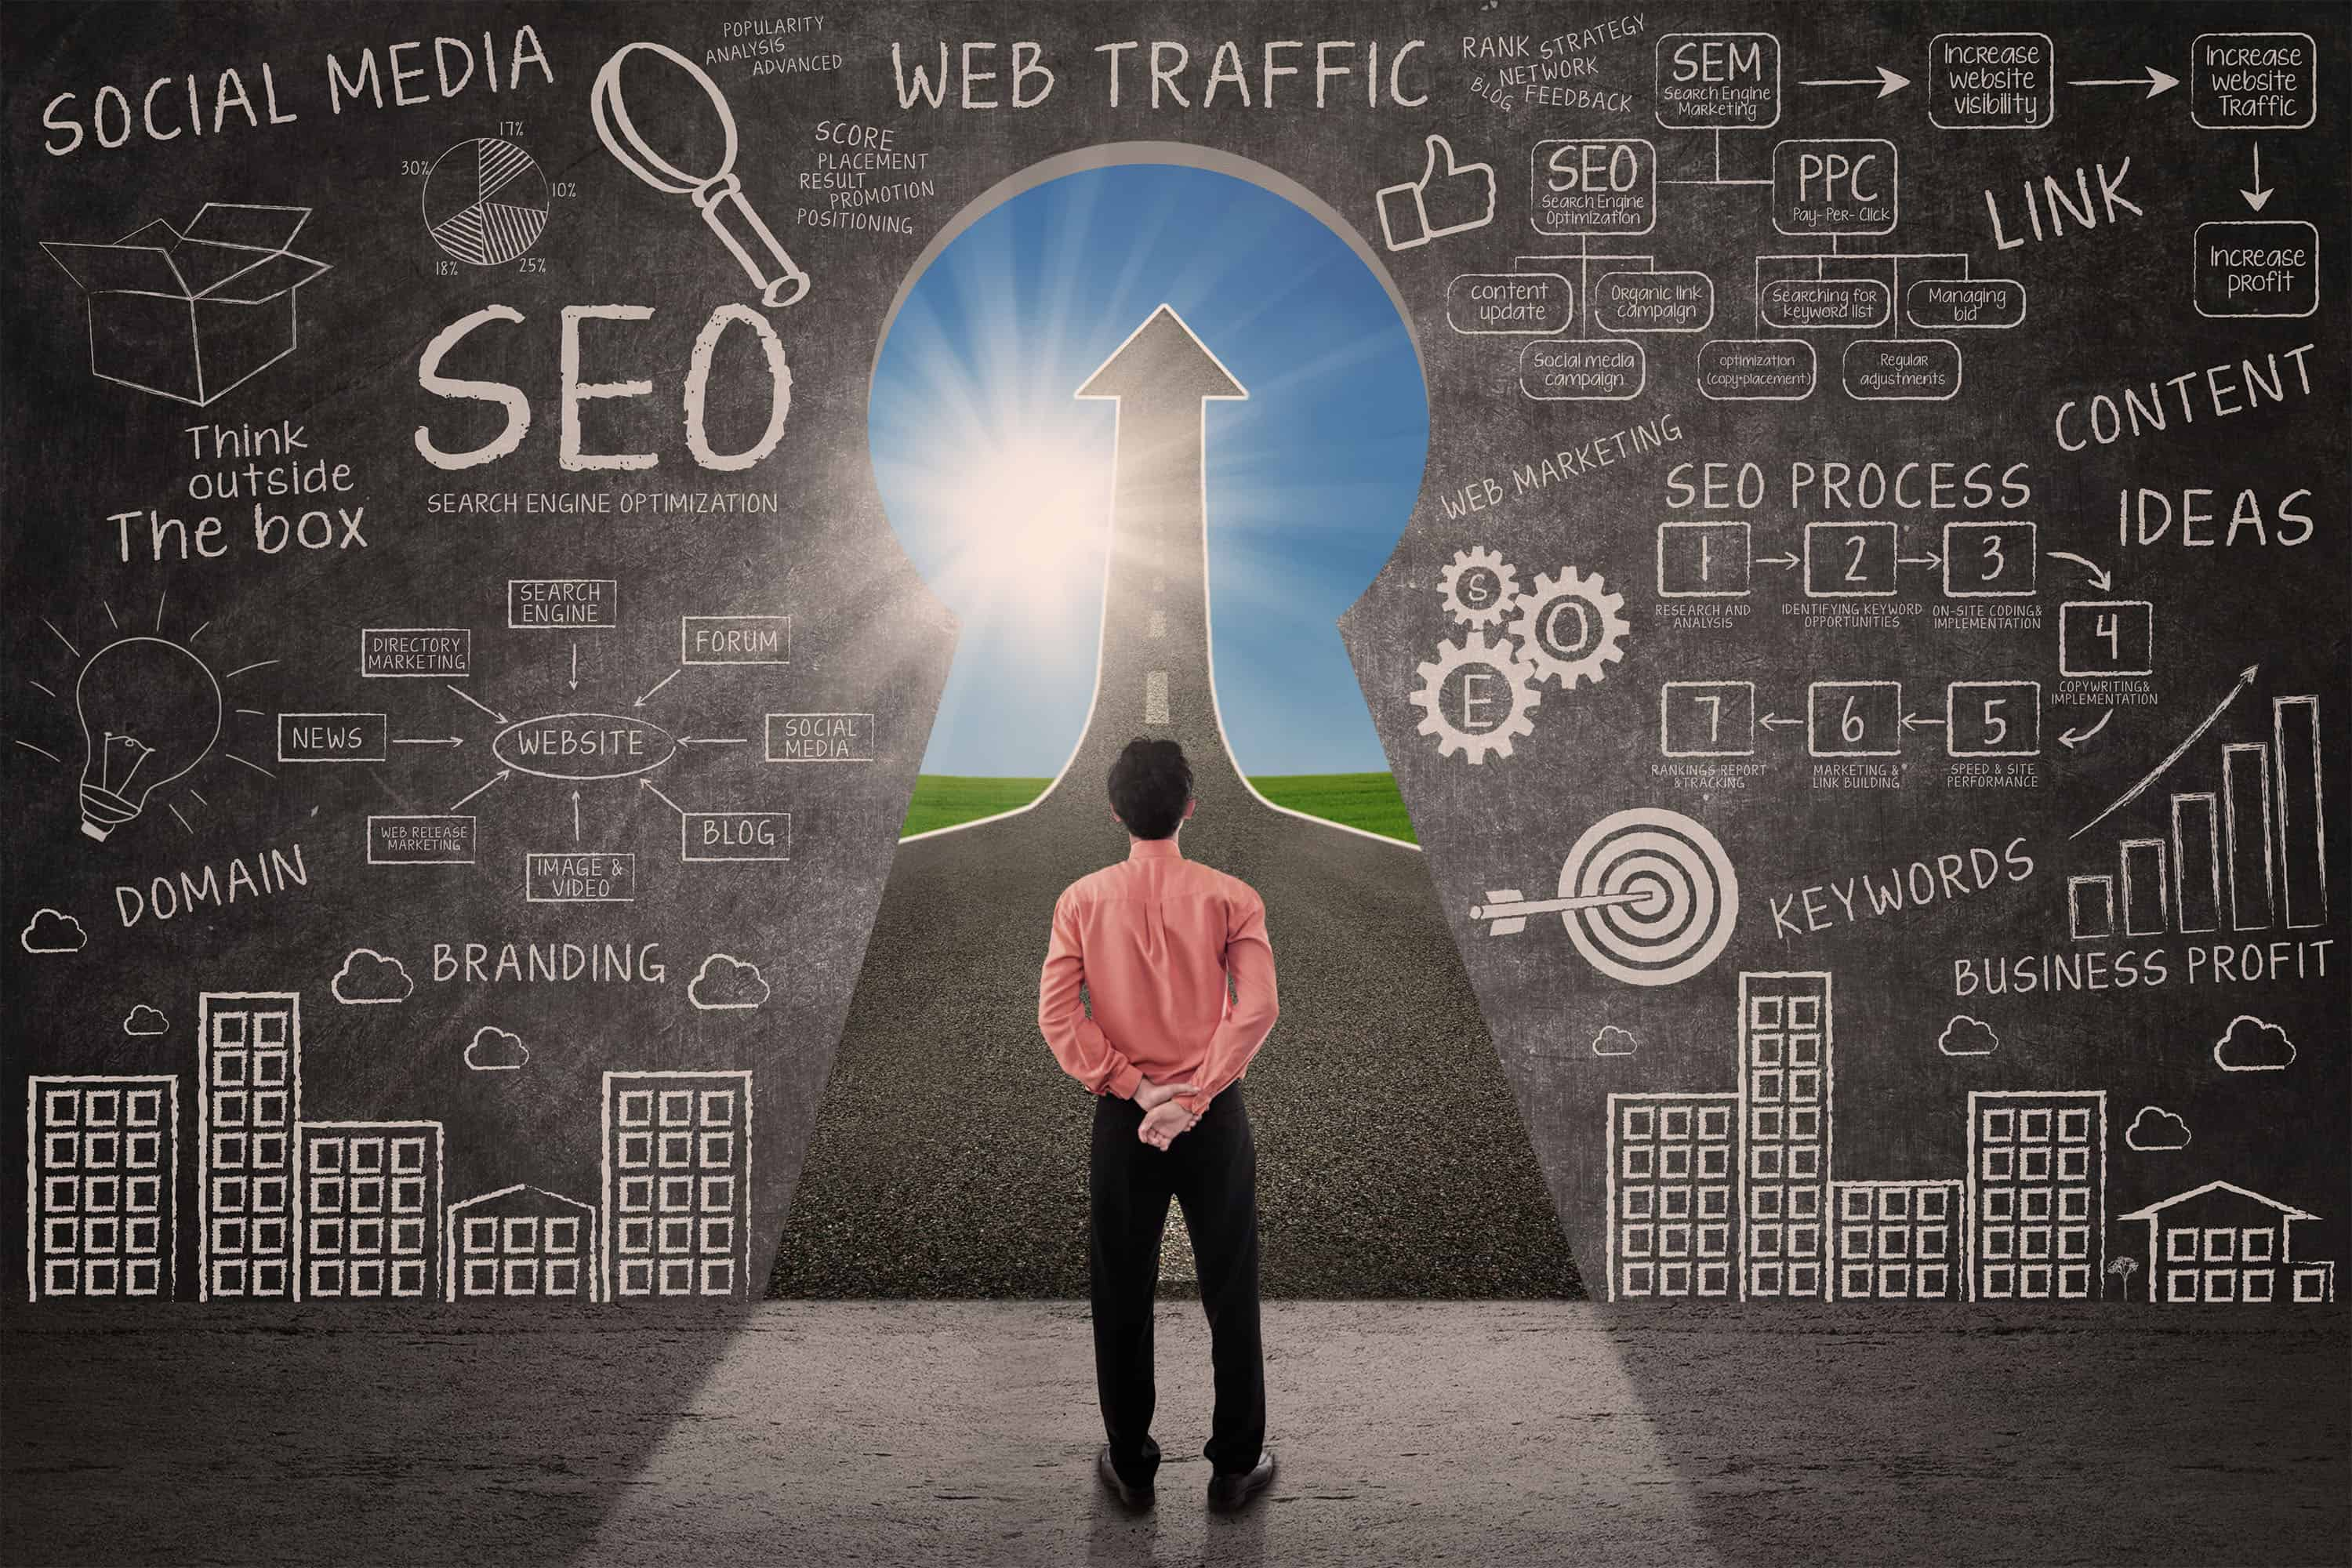 Focus on SEO